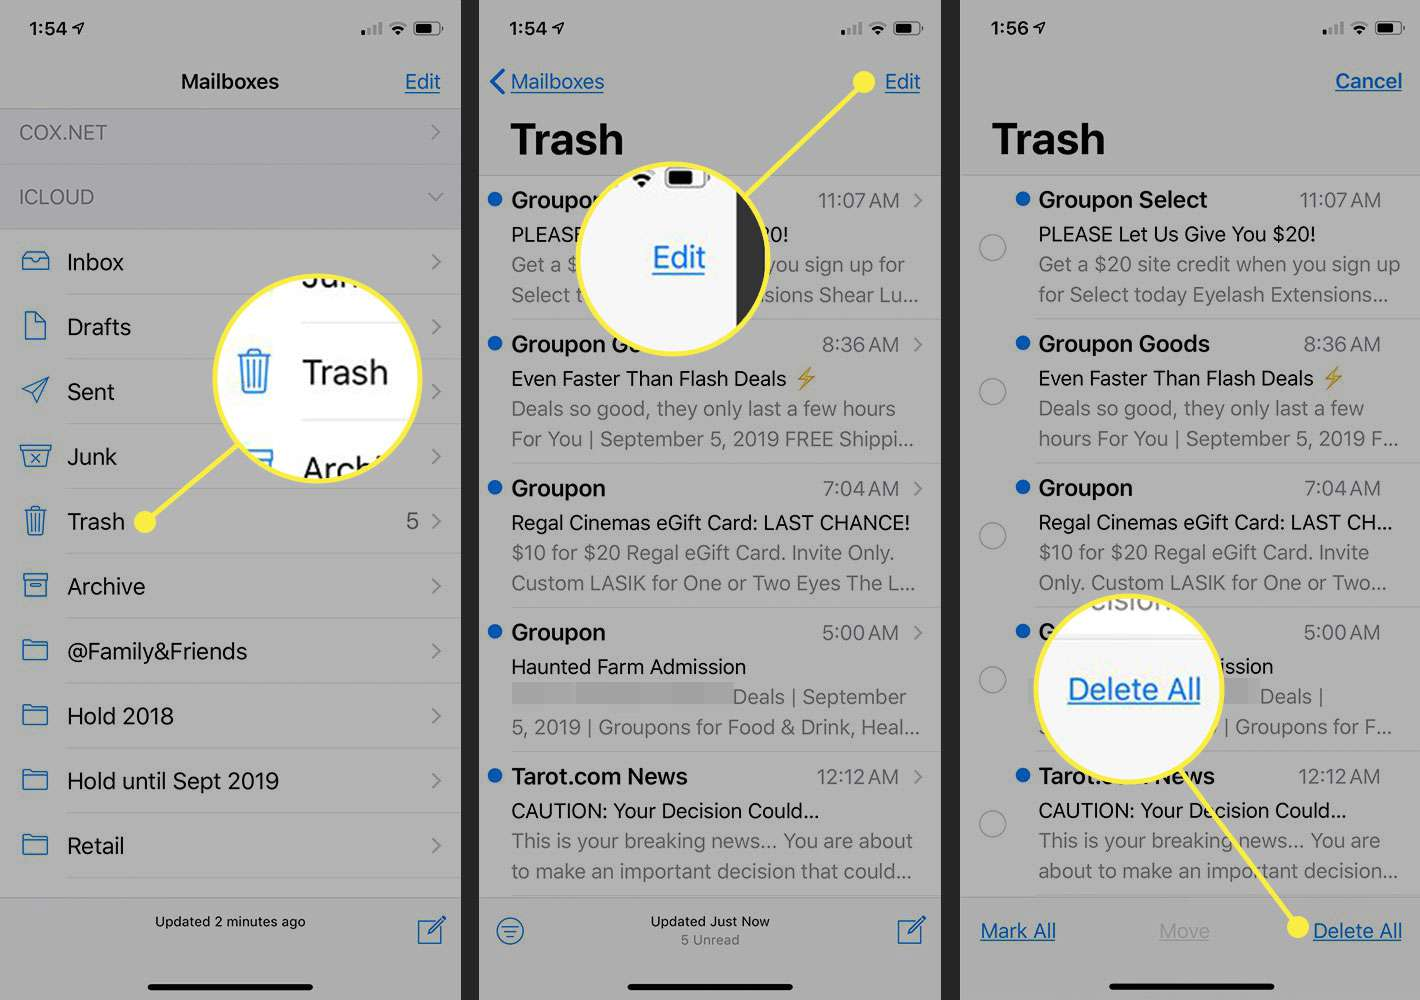 Screenshots of an iPhone showing how to delete the Trash folder in Mail